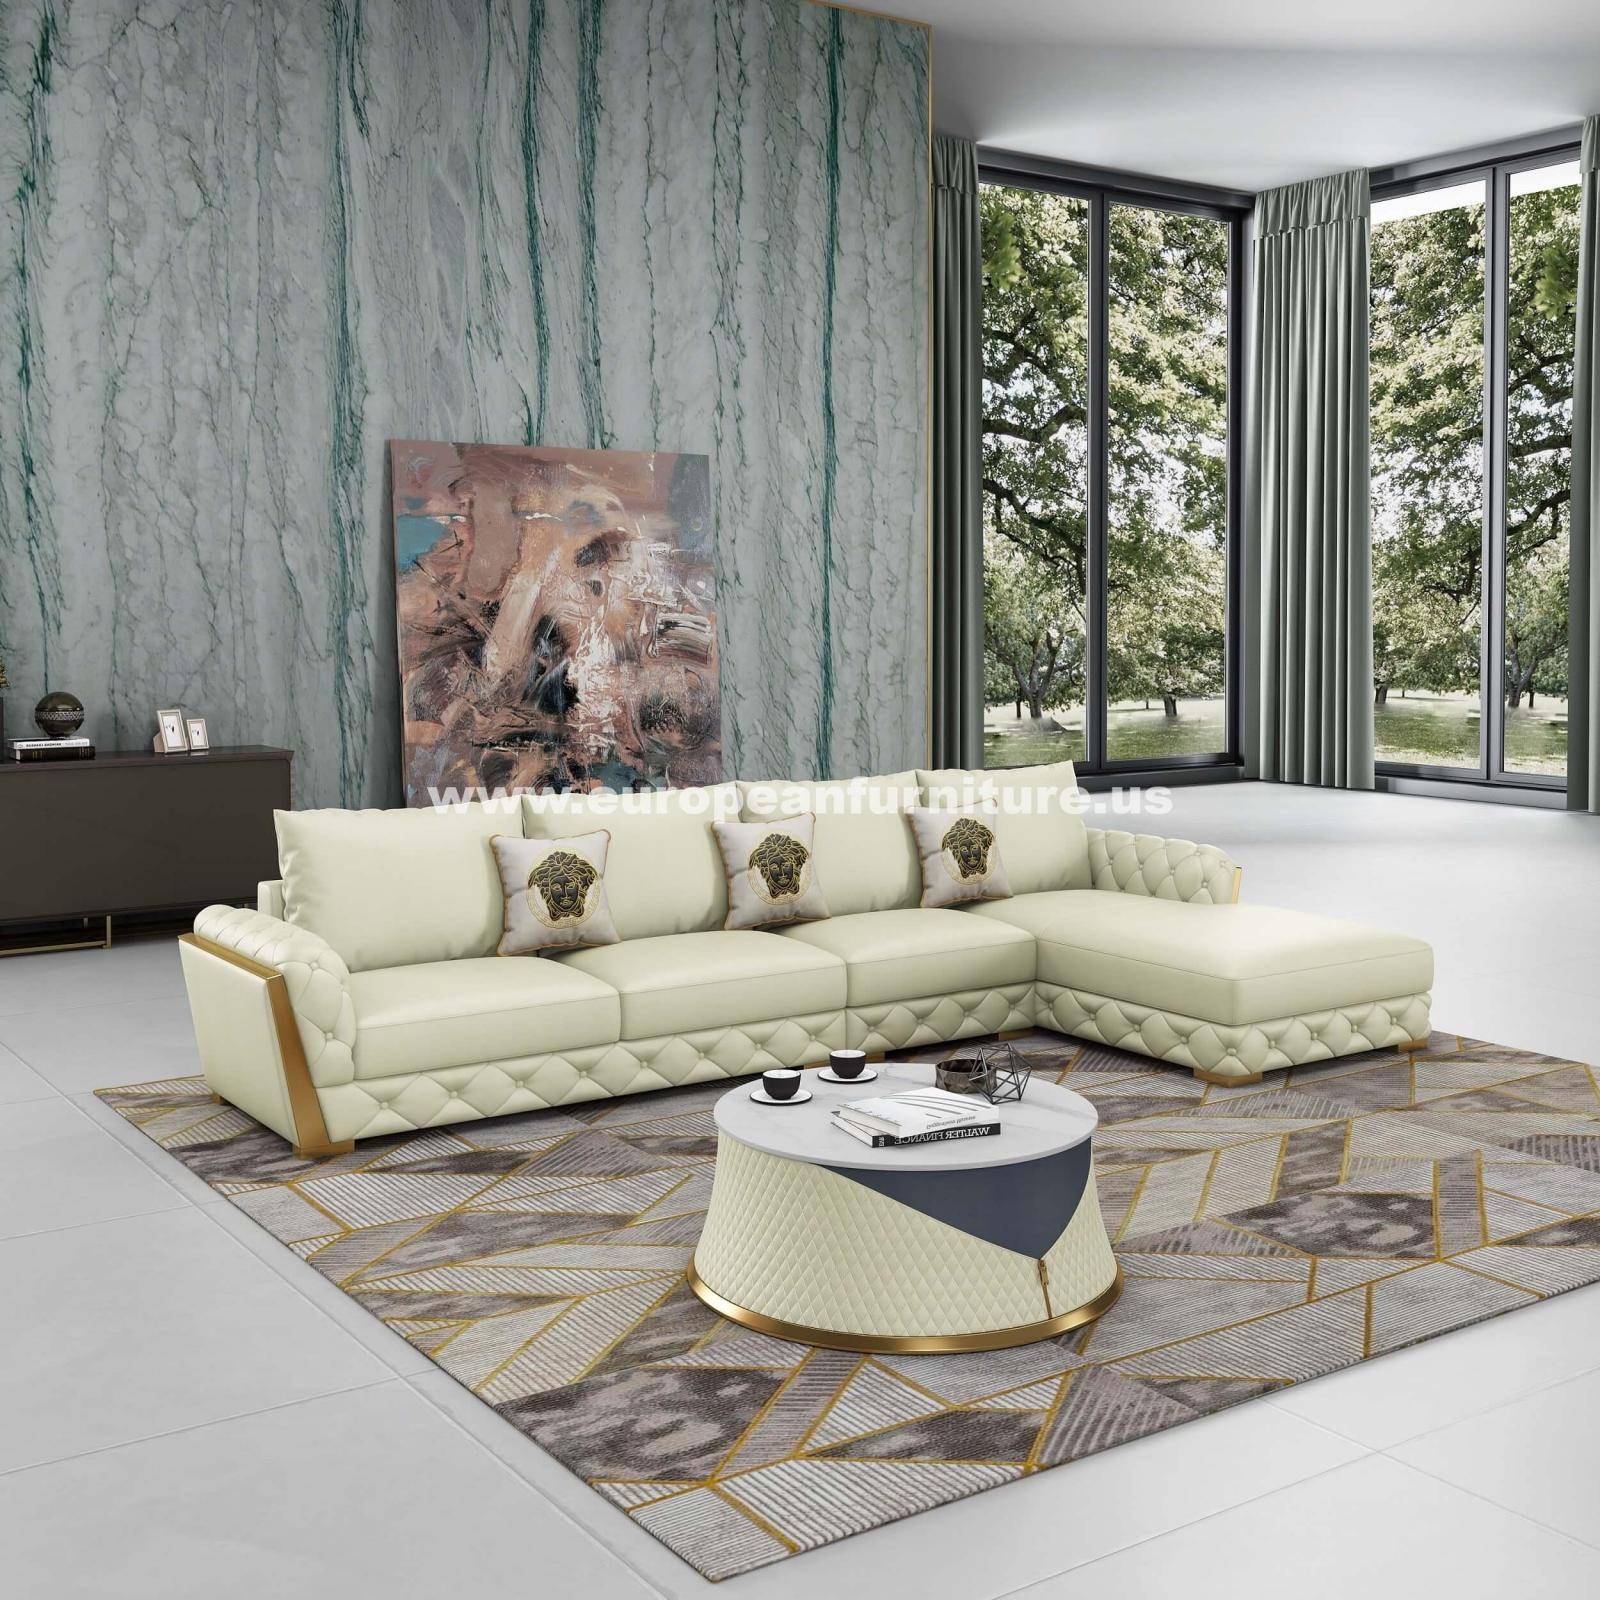 Contemporary, Modern Off-White Leather and Wood, Solid Hardwood 4-sear Sectional Sofa RHC CASTELLO by European Furniture